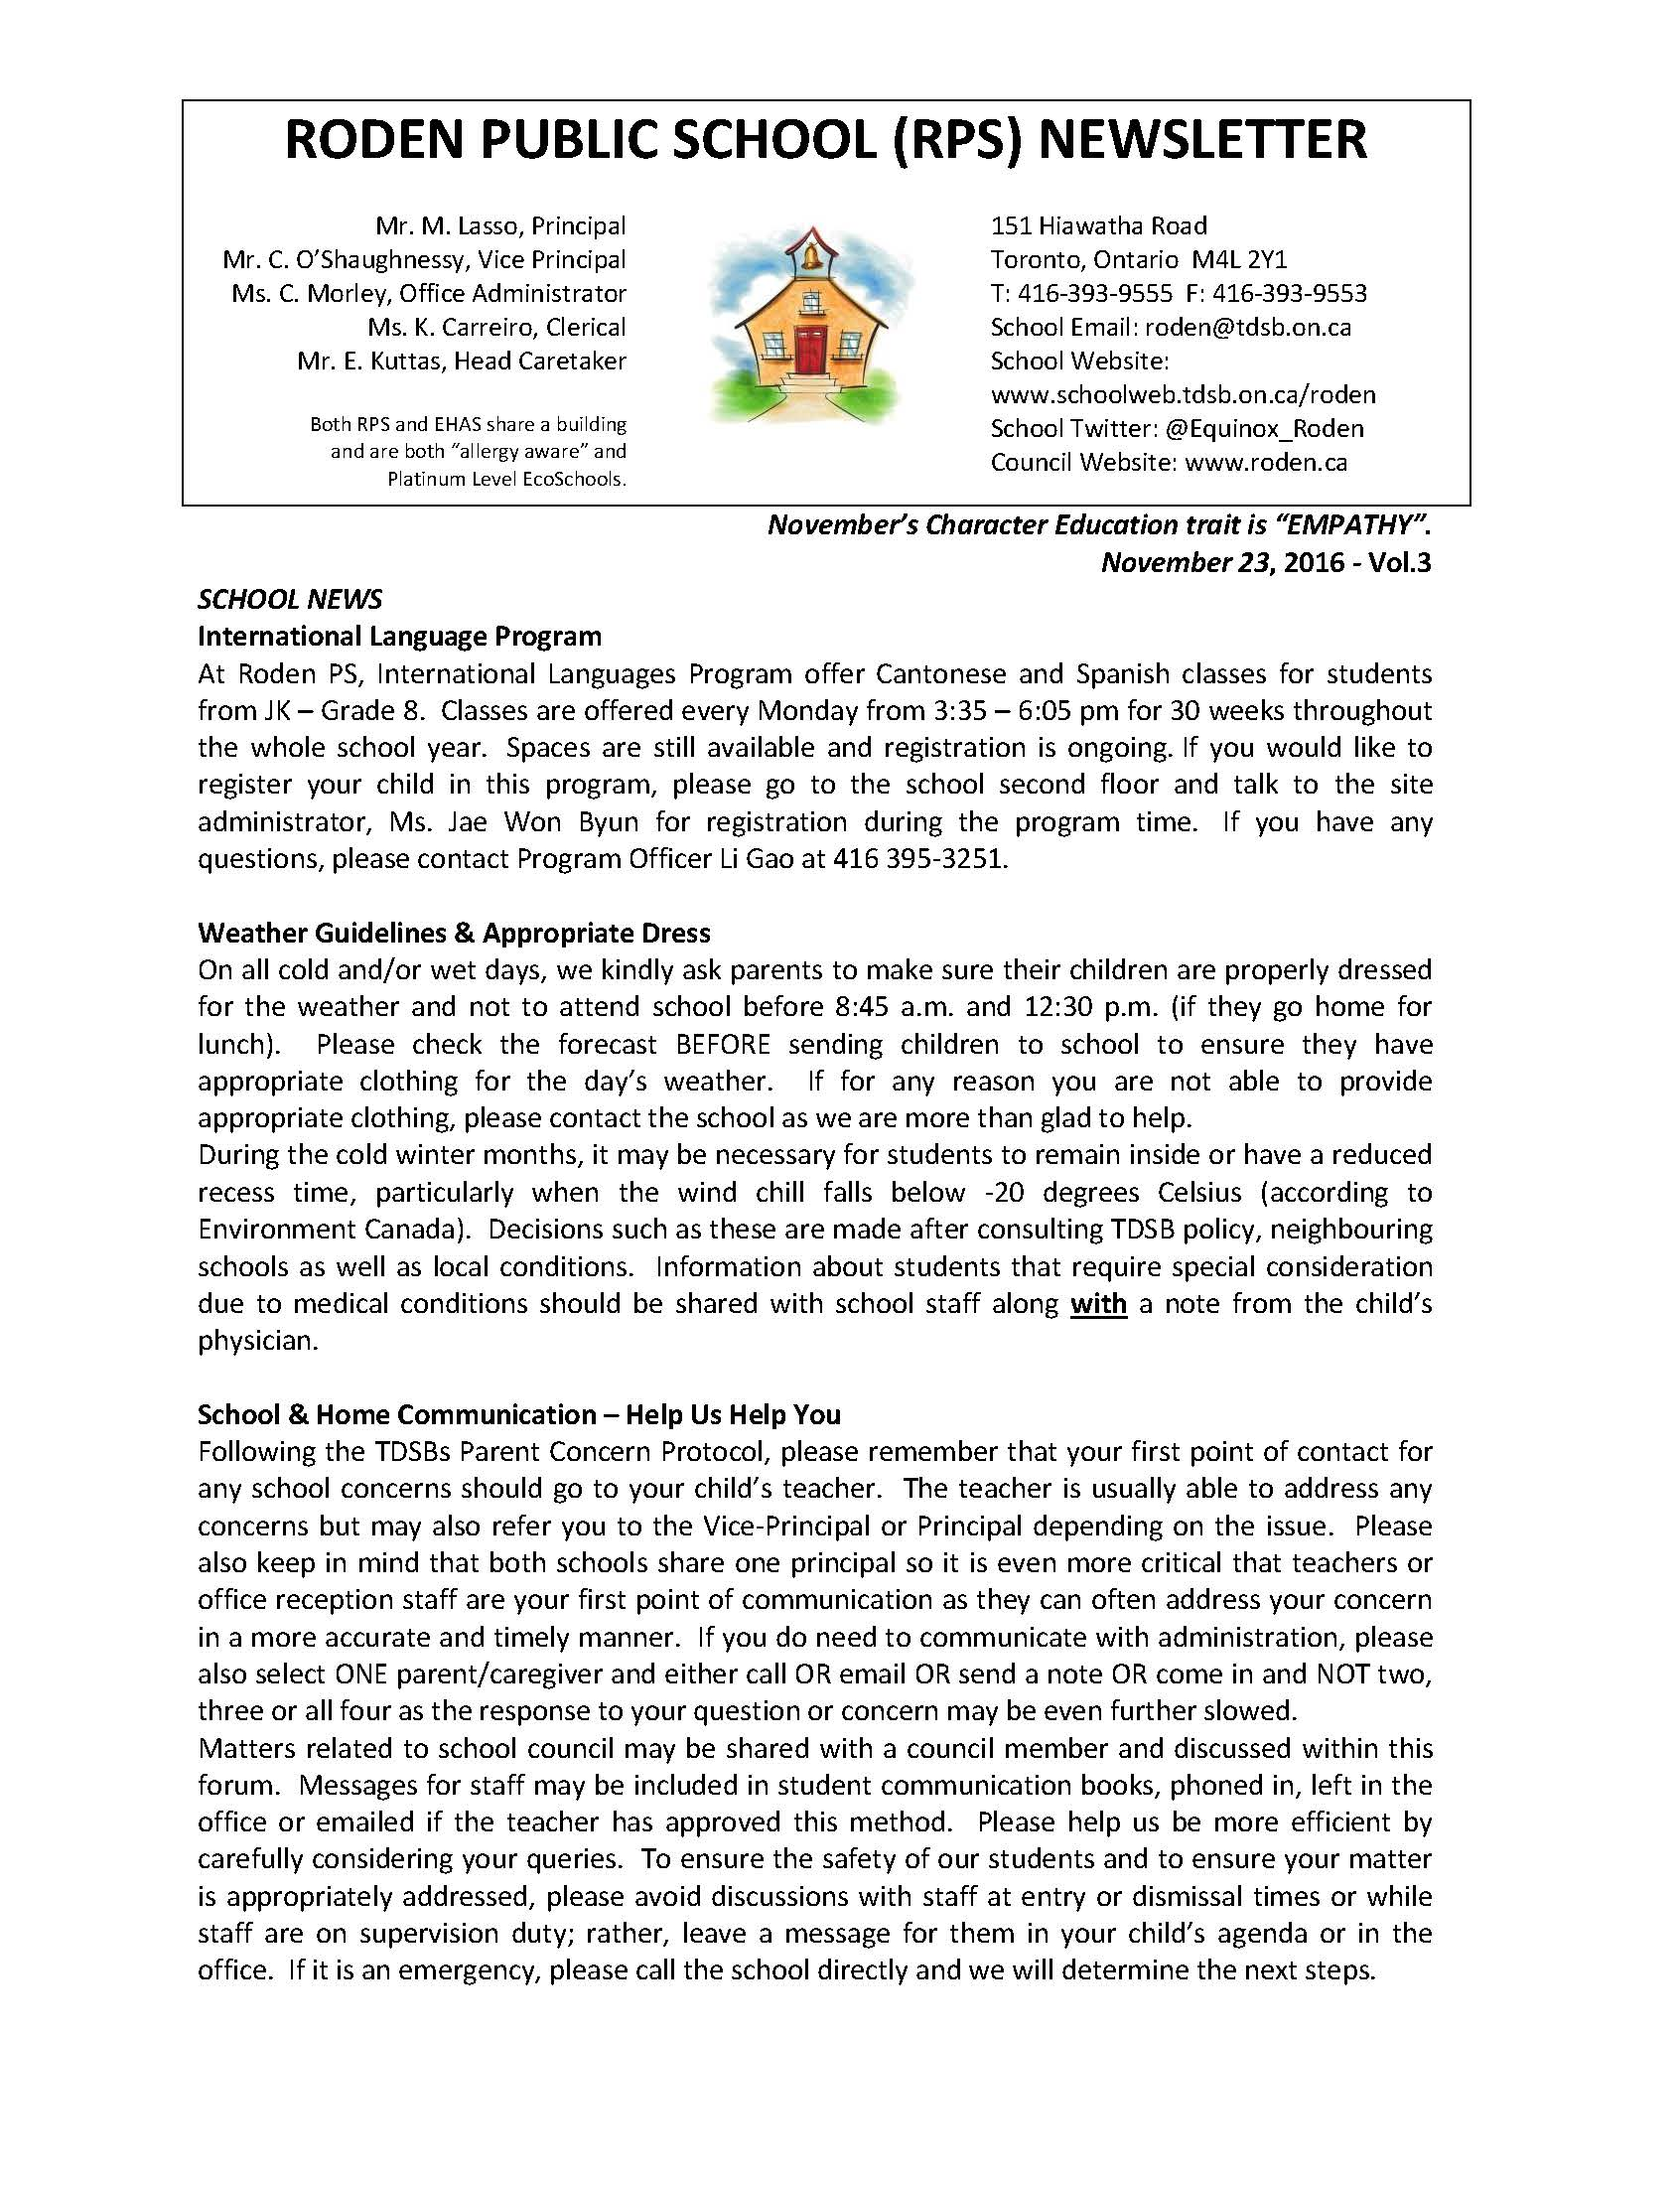 Roden Newsletter 16-11-23 Page_1